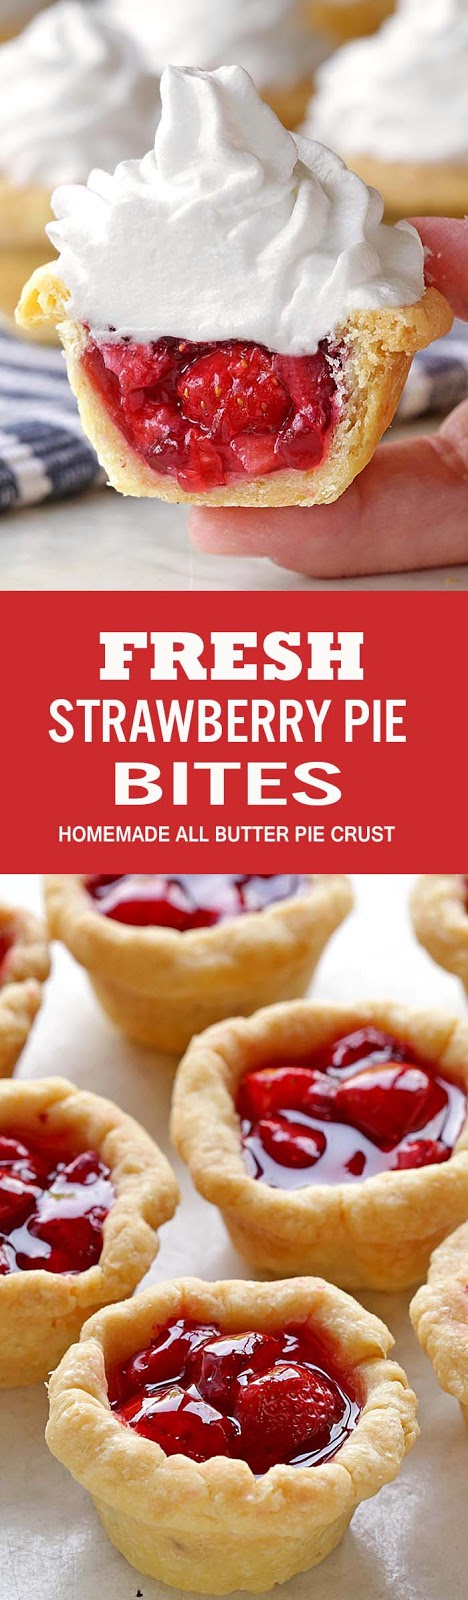 Fresh Strawberry Pie Bites